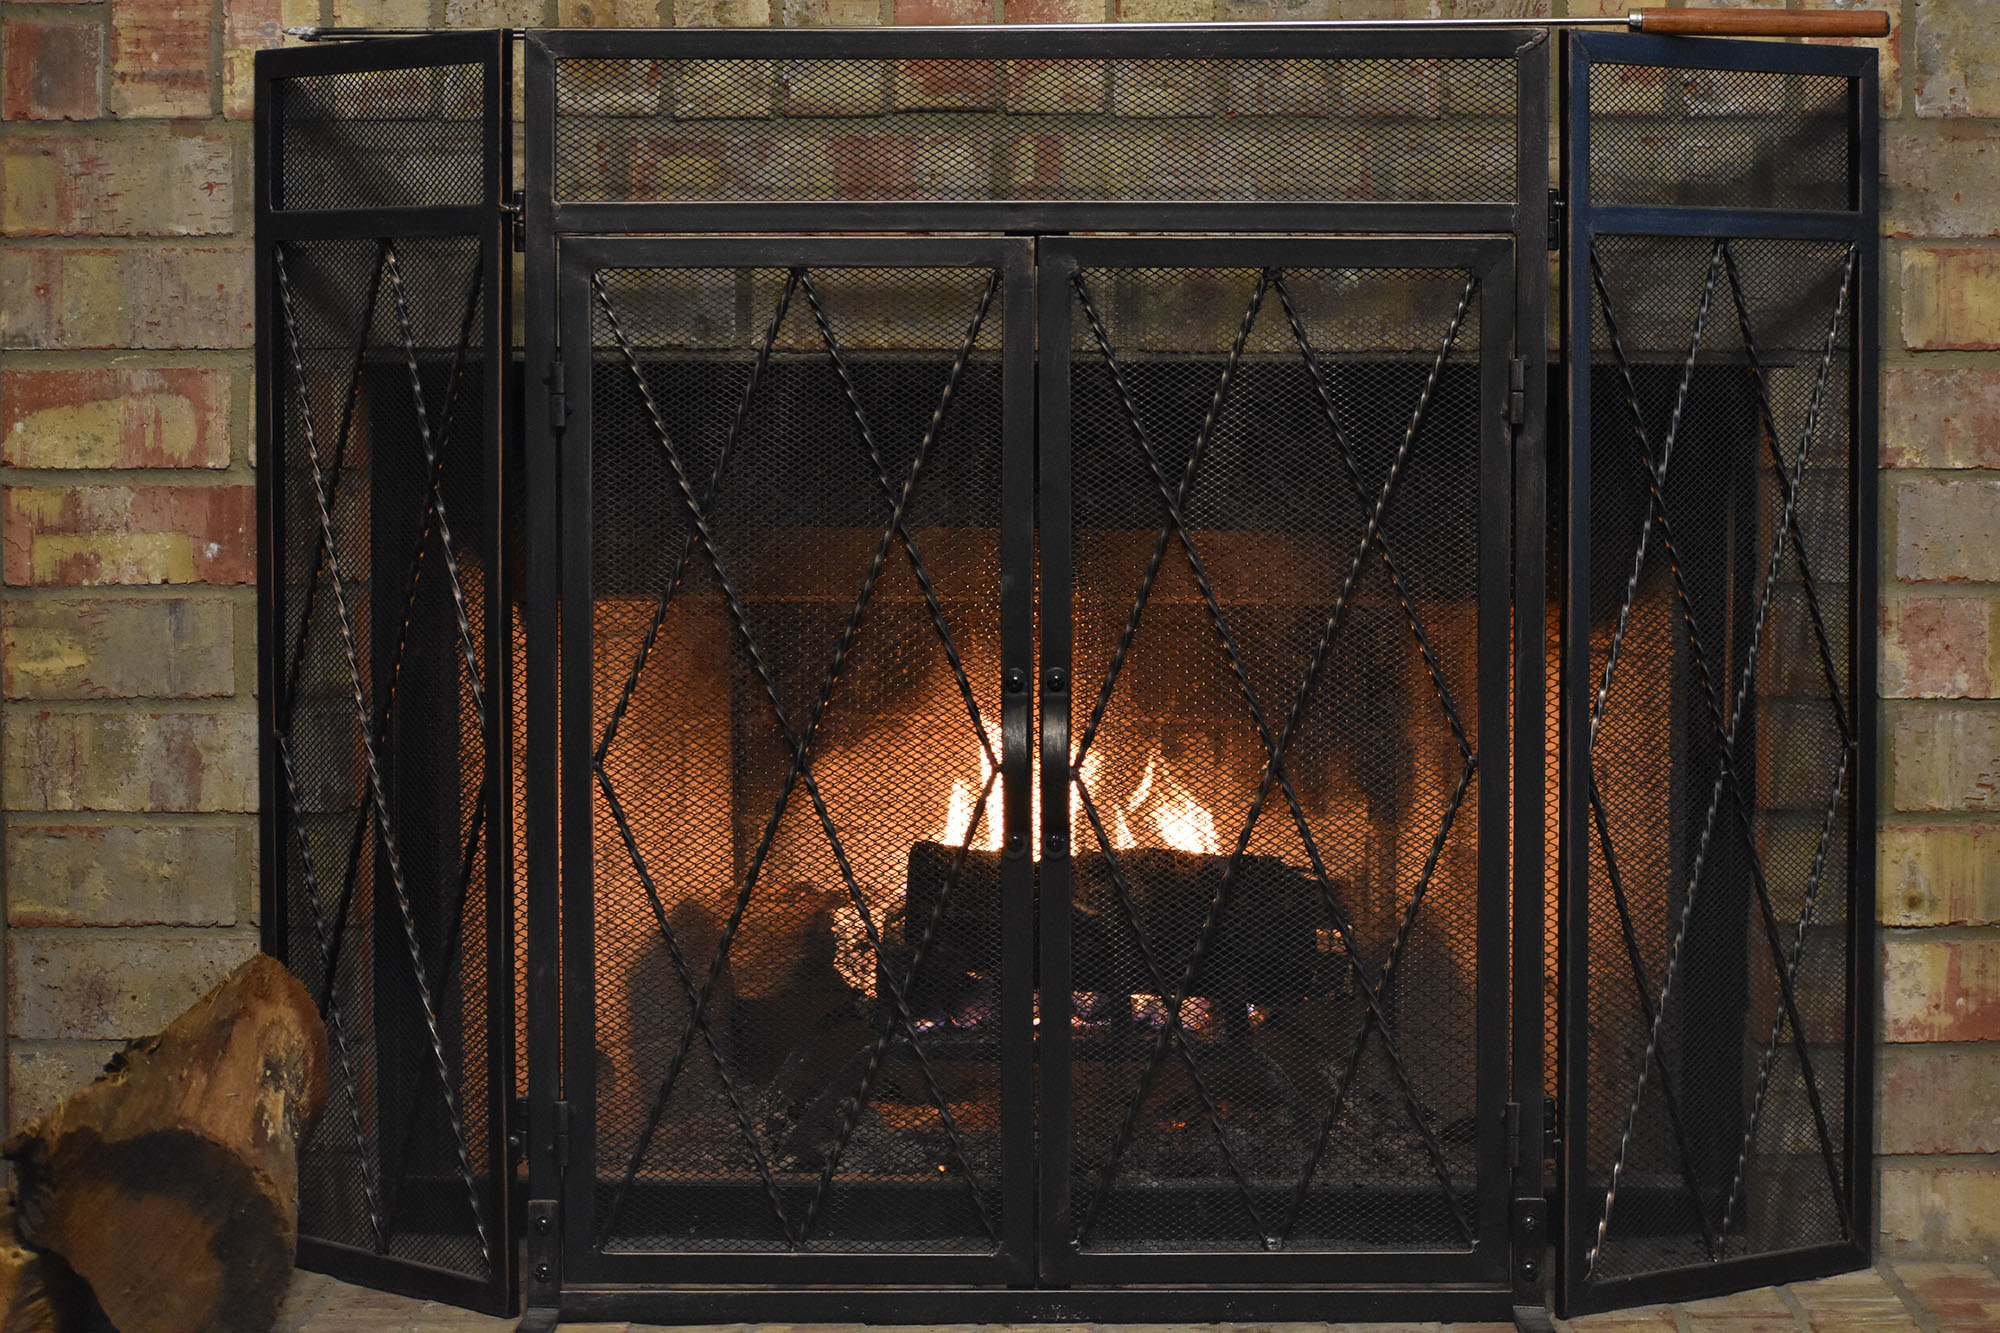 gas fireplace with log and iron screen and blazing fire within